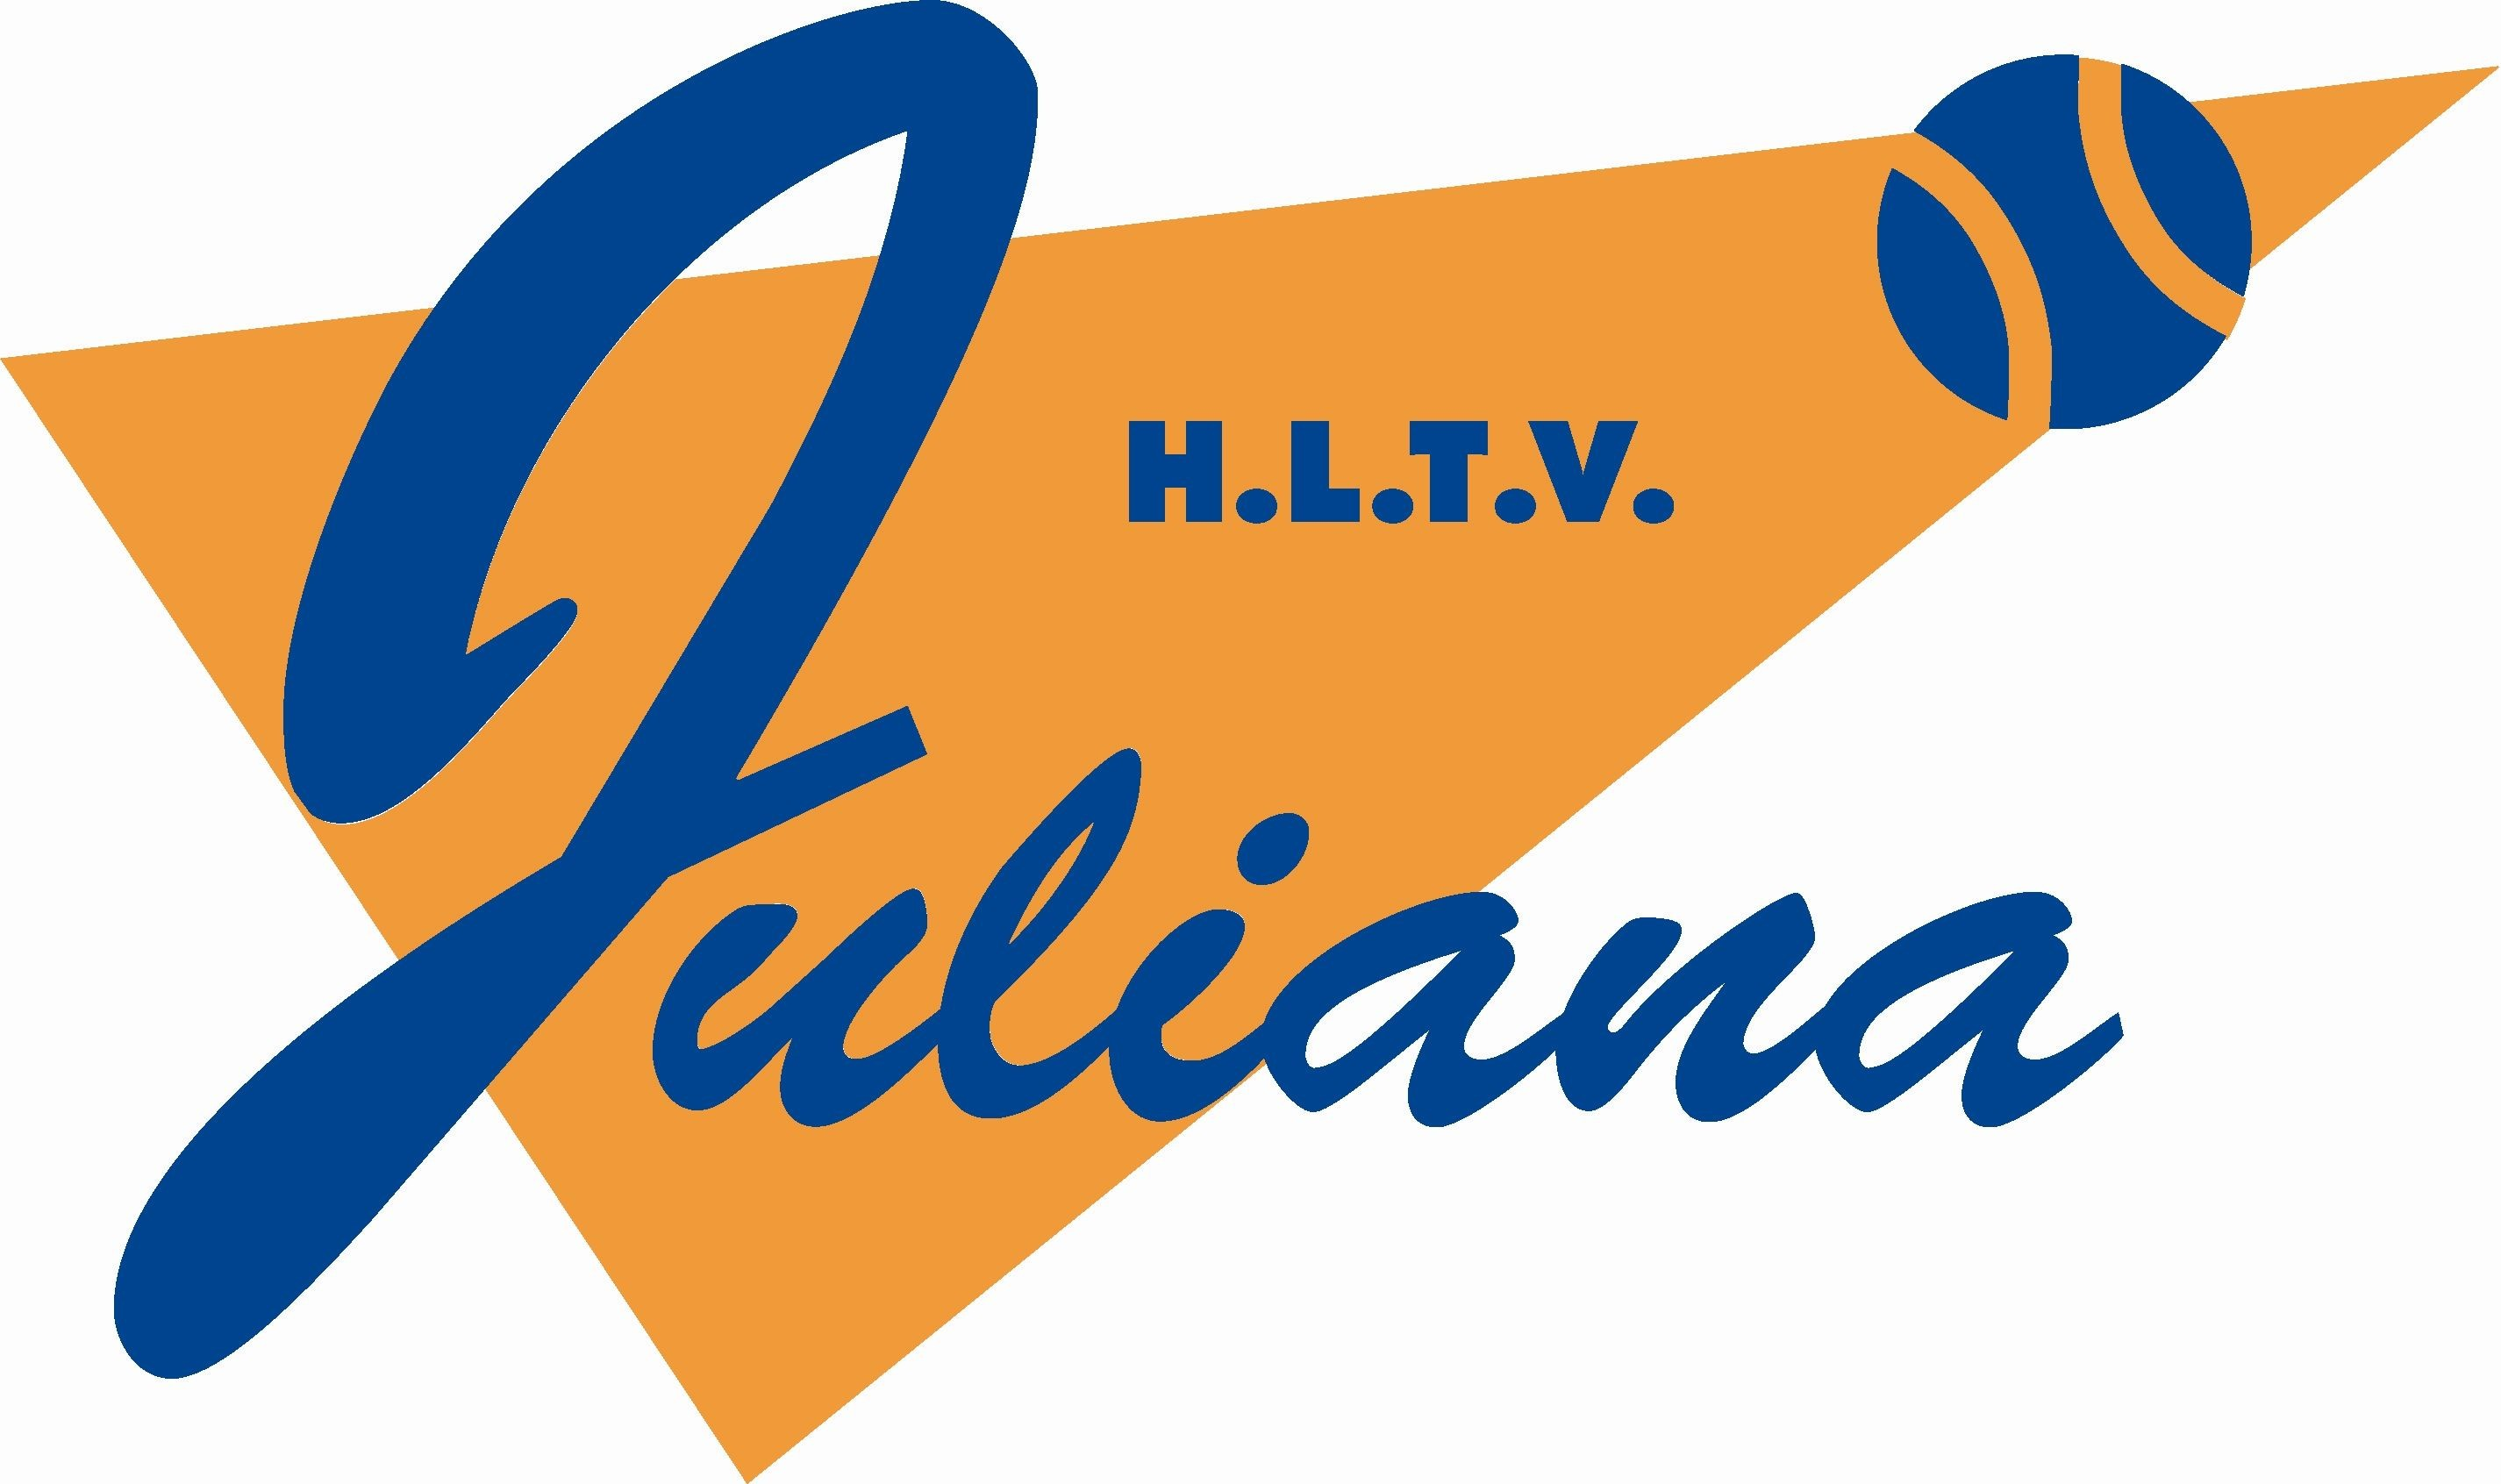 HLTV Juliana - Hoorn